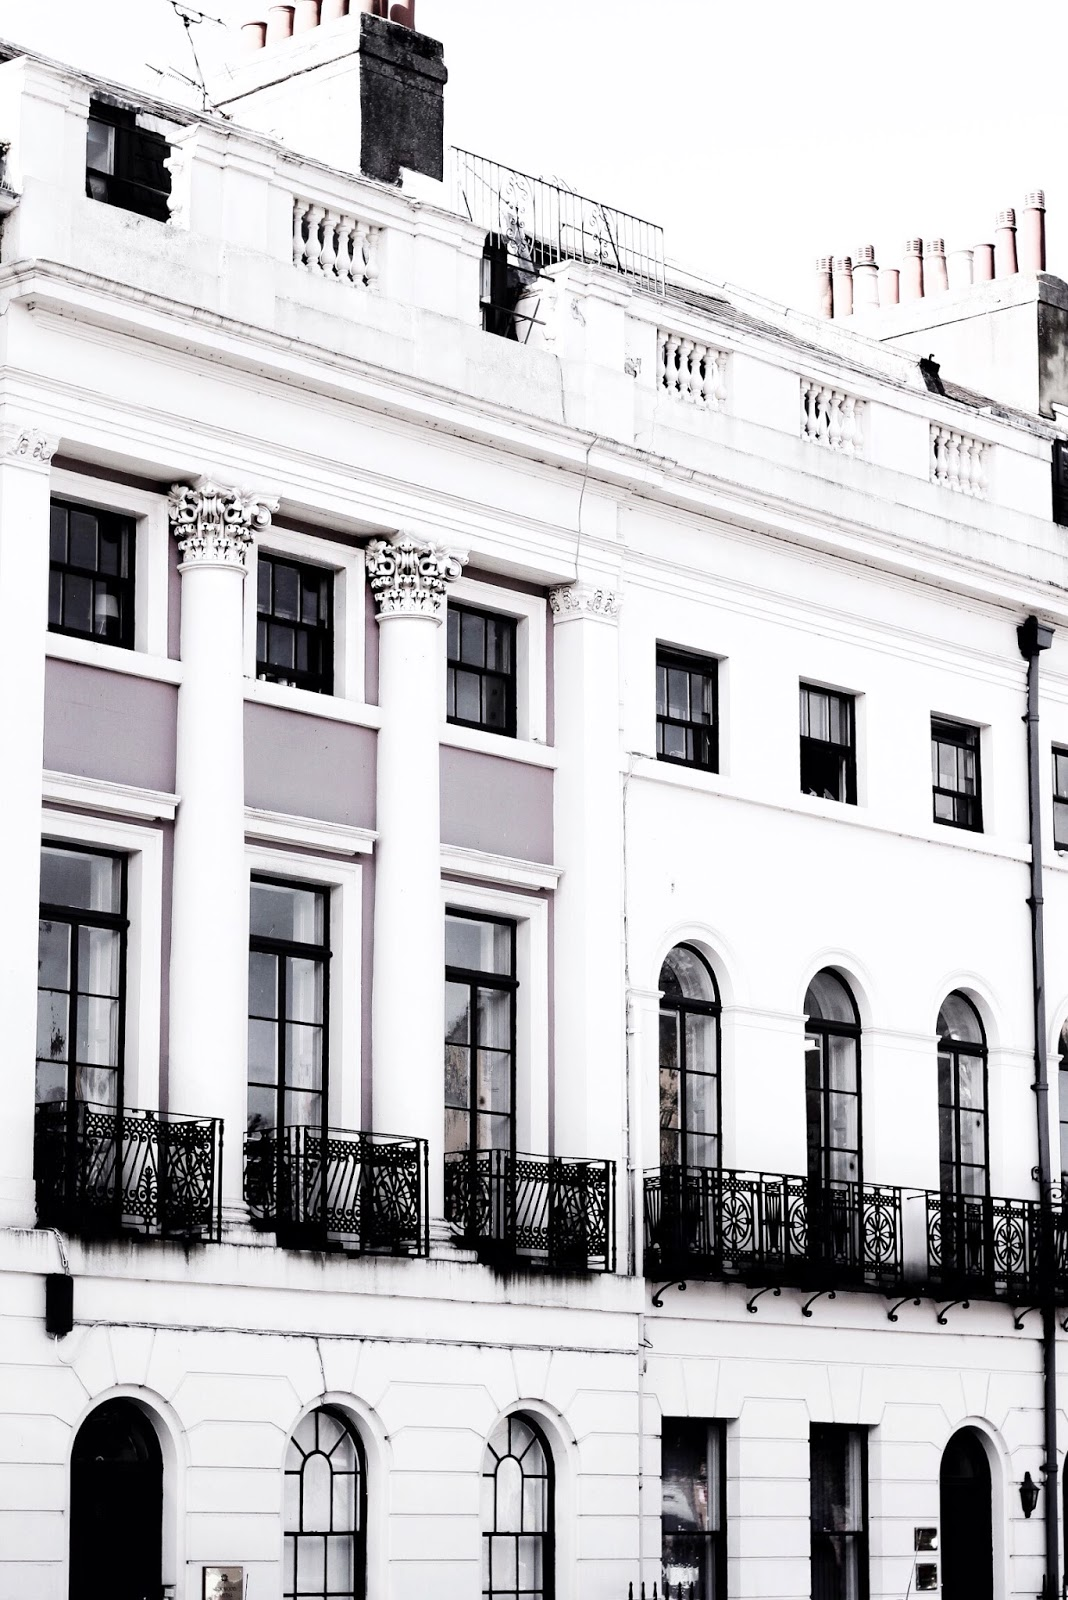 Luxurious White Town Buildings Outside of London